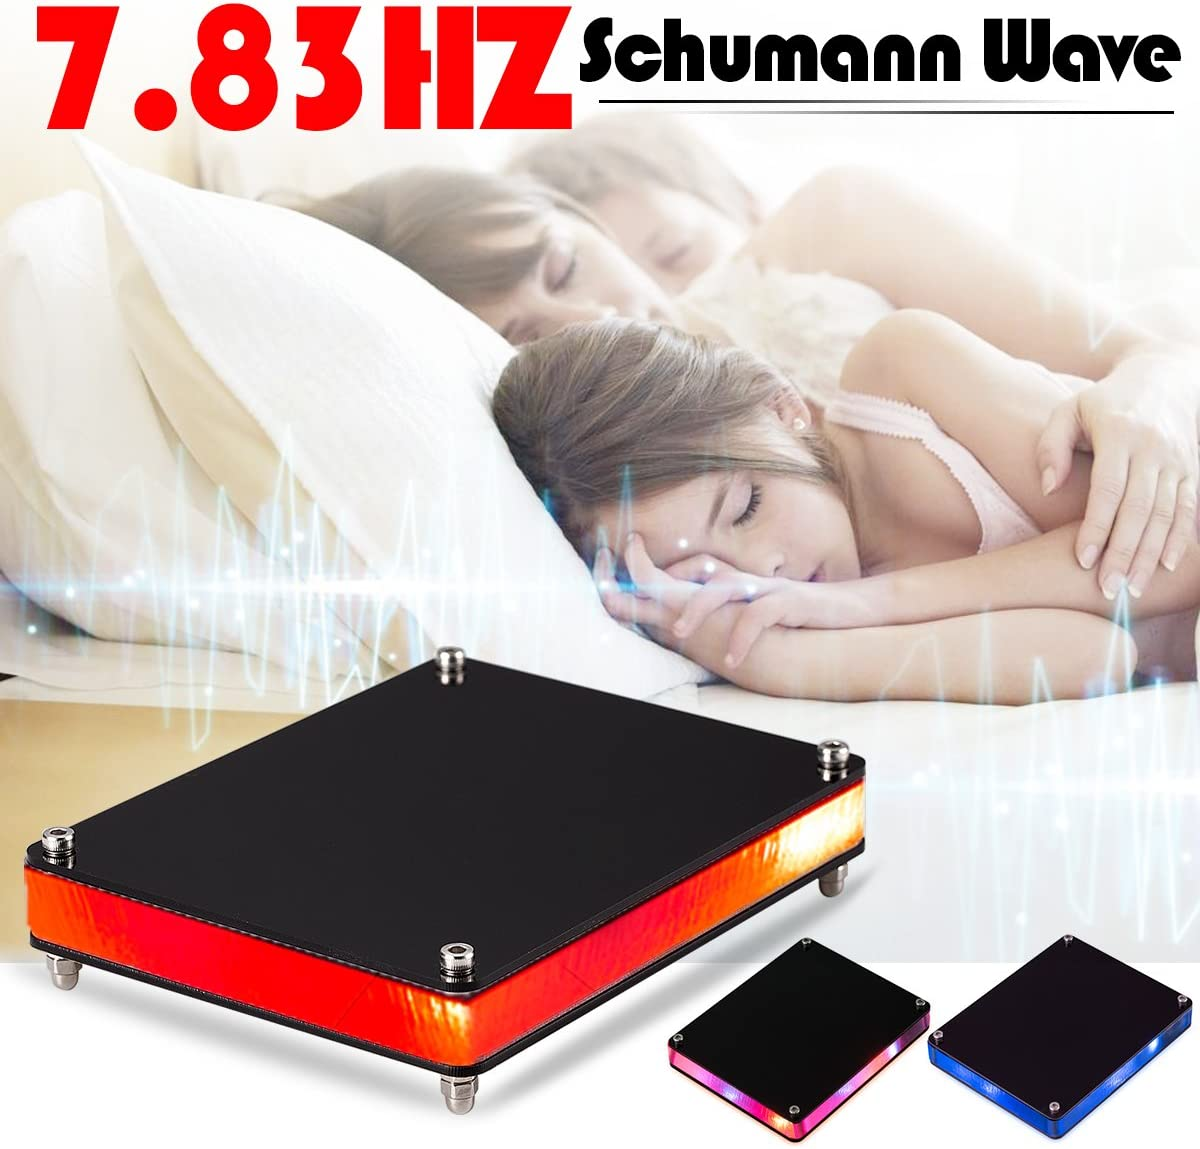 Douk Audio Nobsound 2018 Schumann Wave 7.83HZ Ultra-Low Frequency Pulse Generator for Relax Sleep